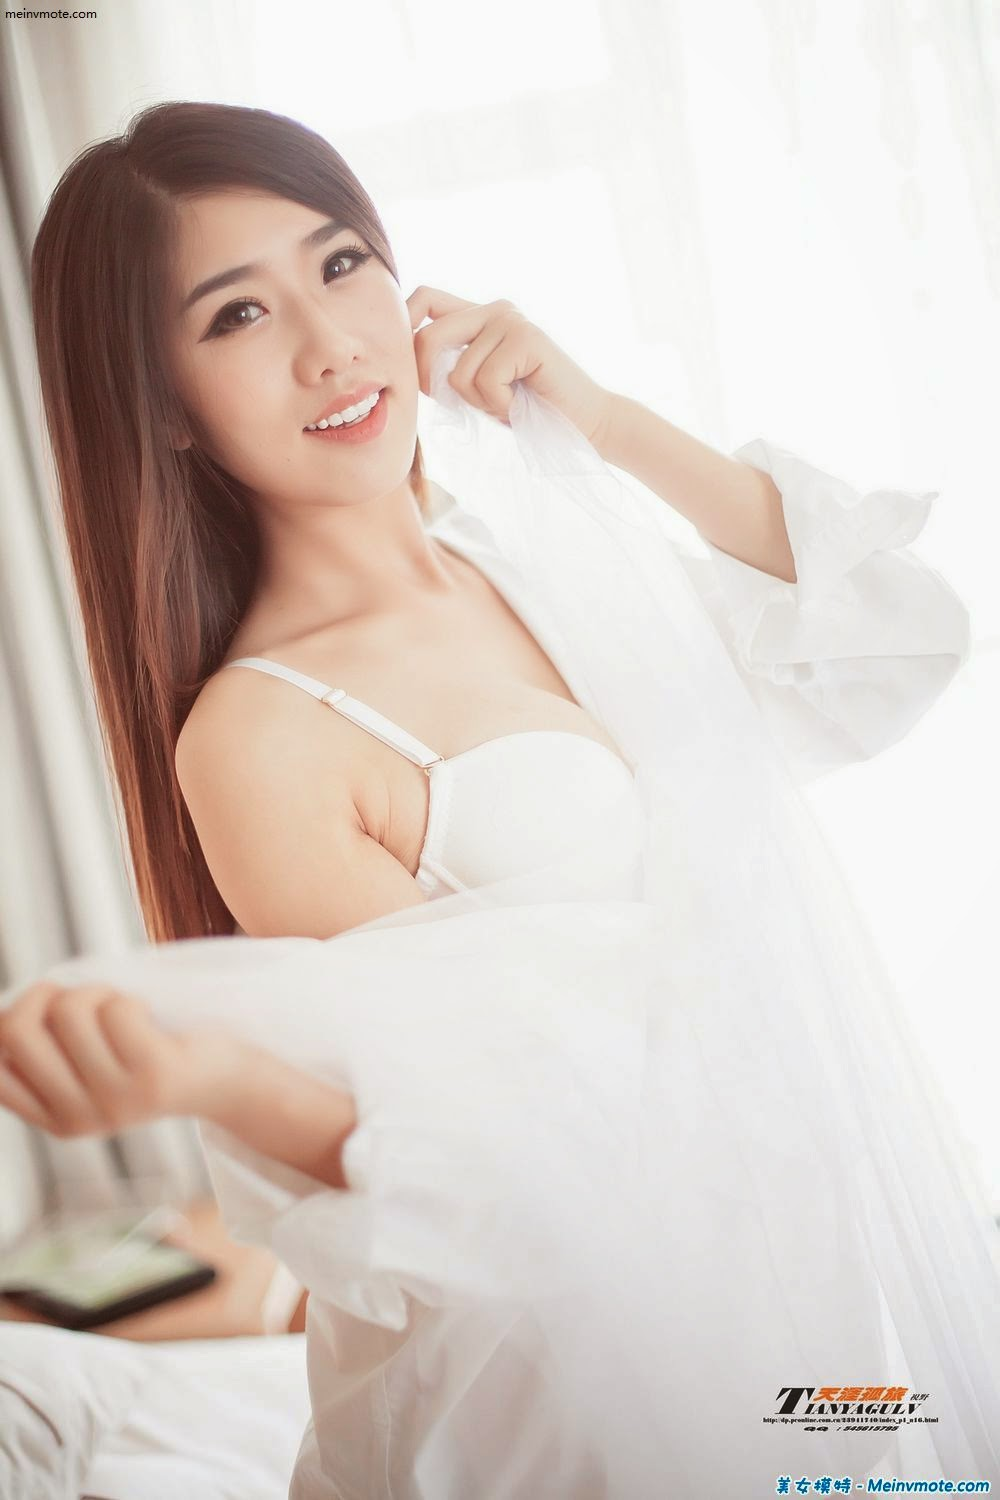 Demure girl Baoshan appeals to the imagination